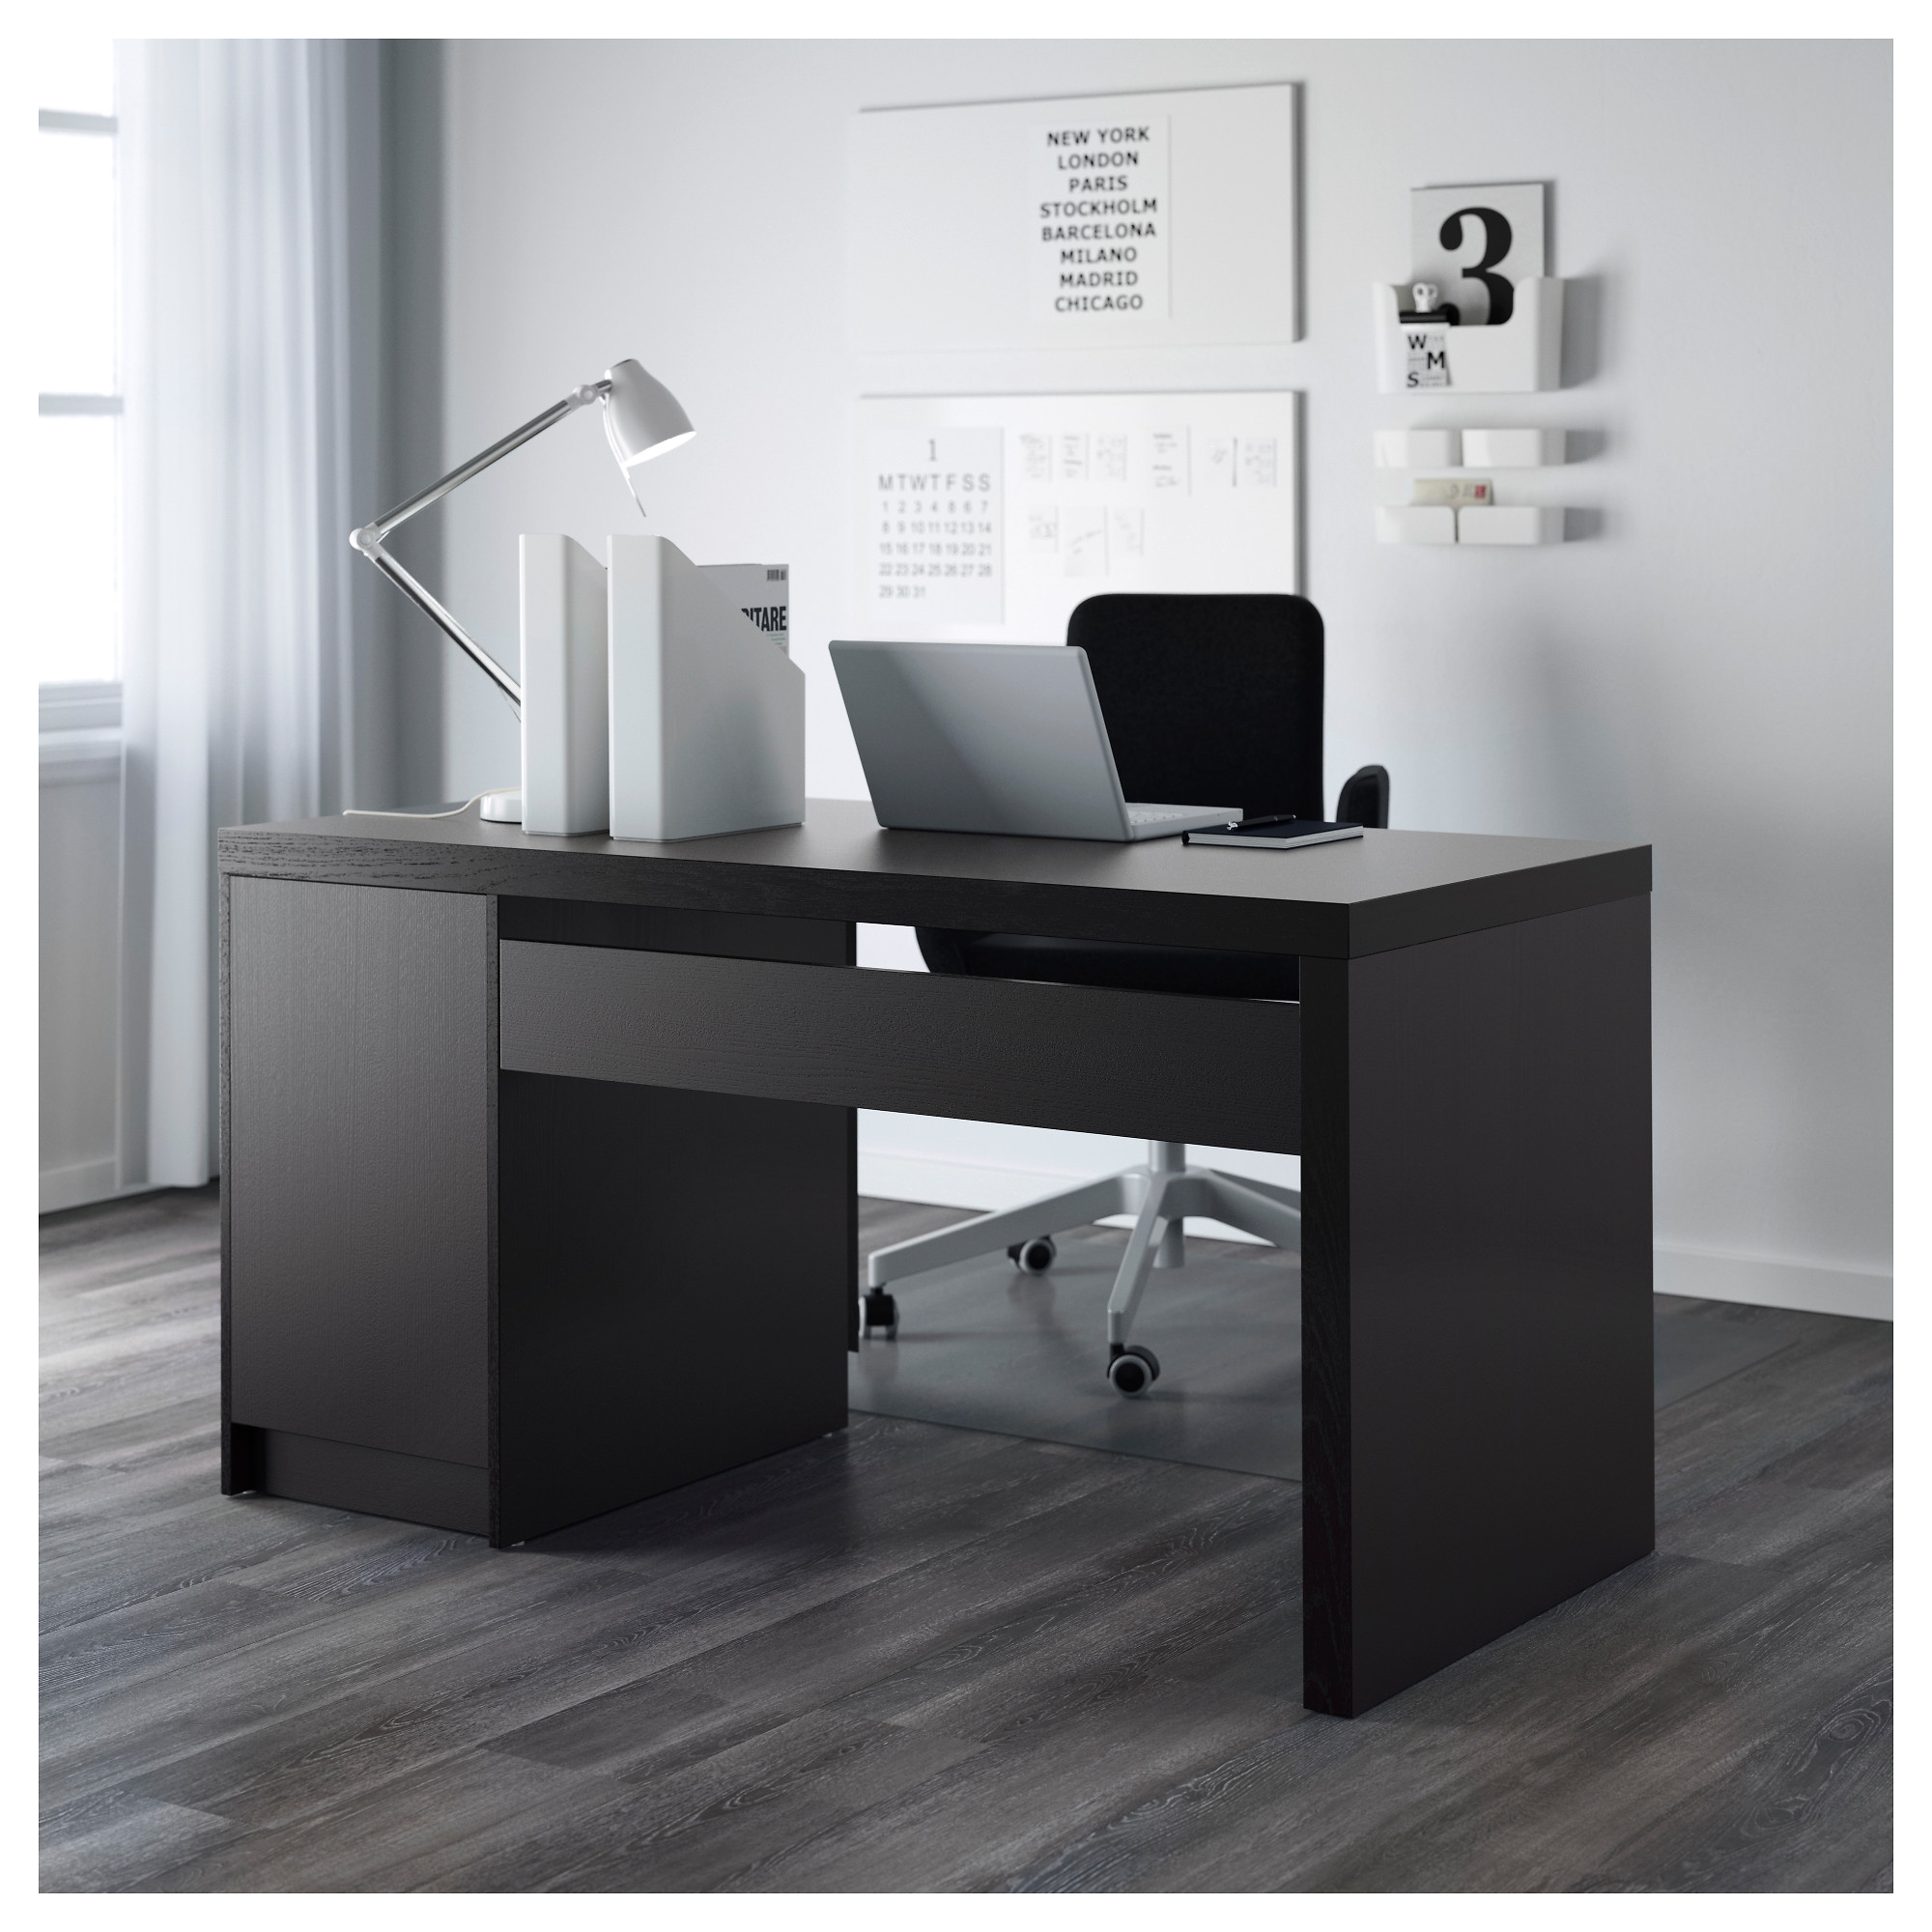 Ikea study table black - Ikea Study Table Black 5